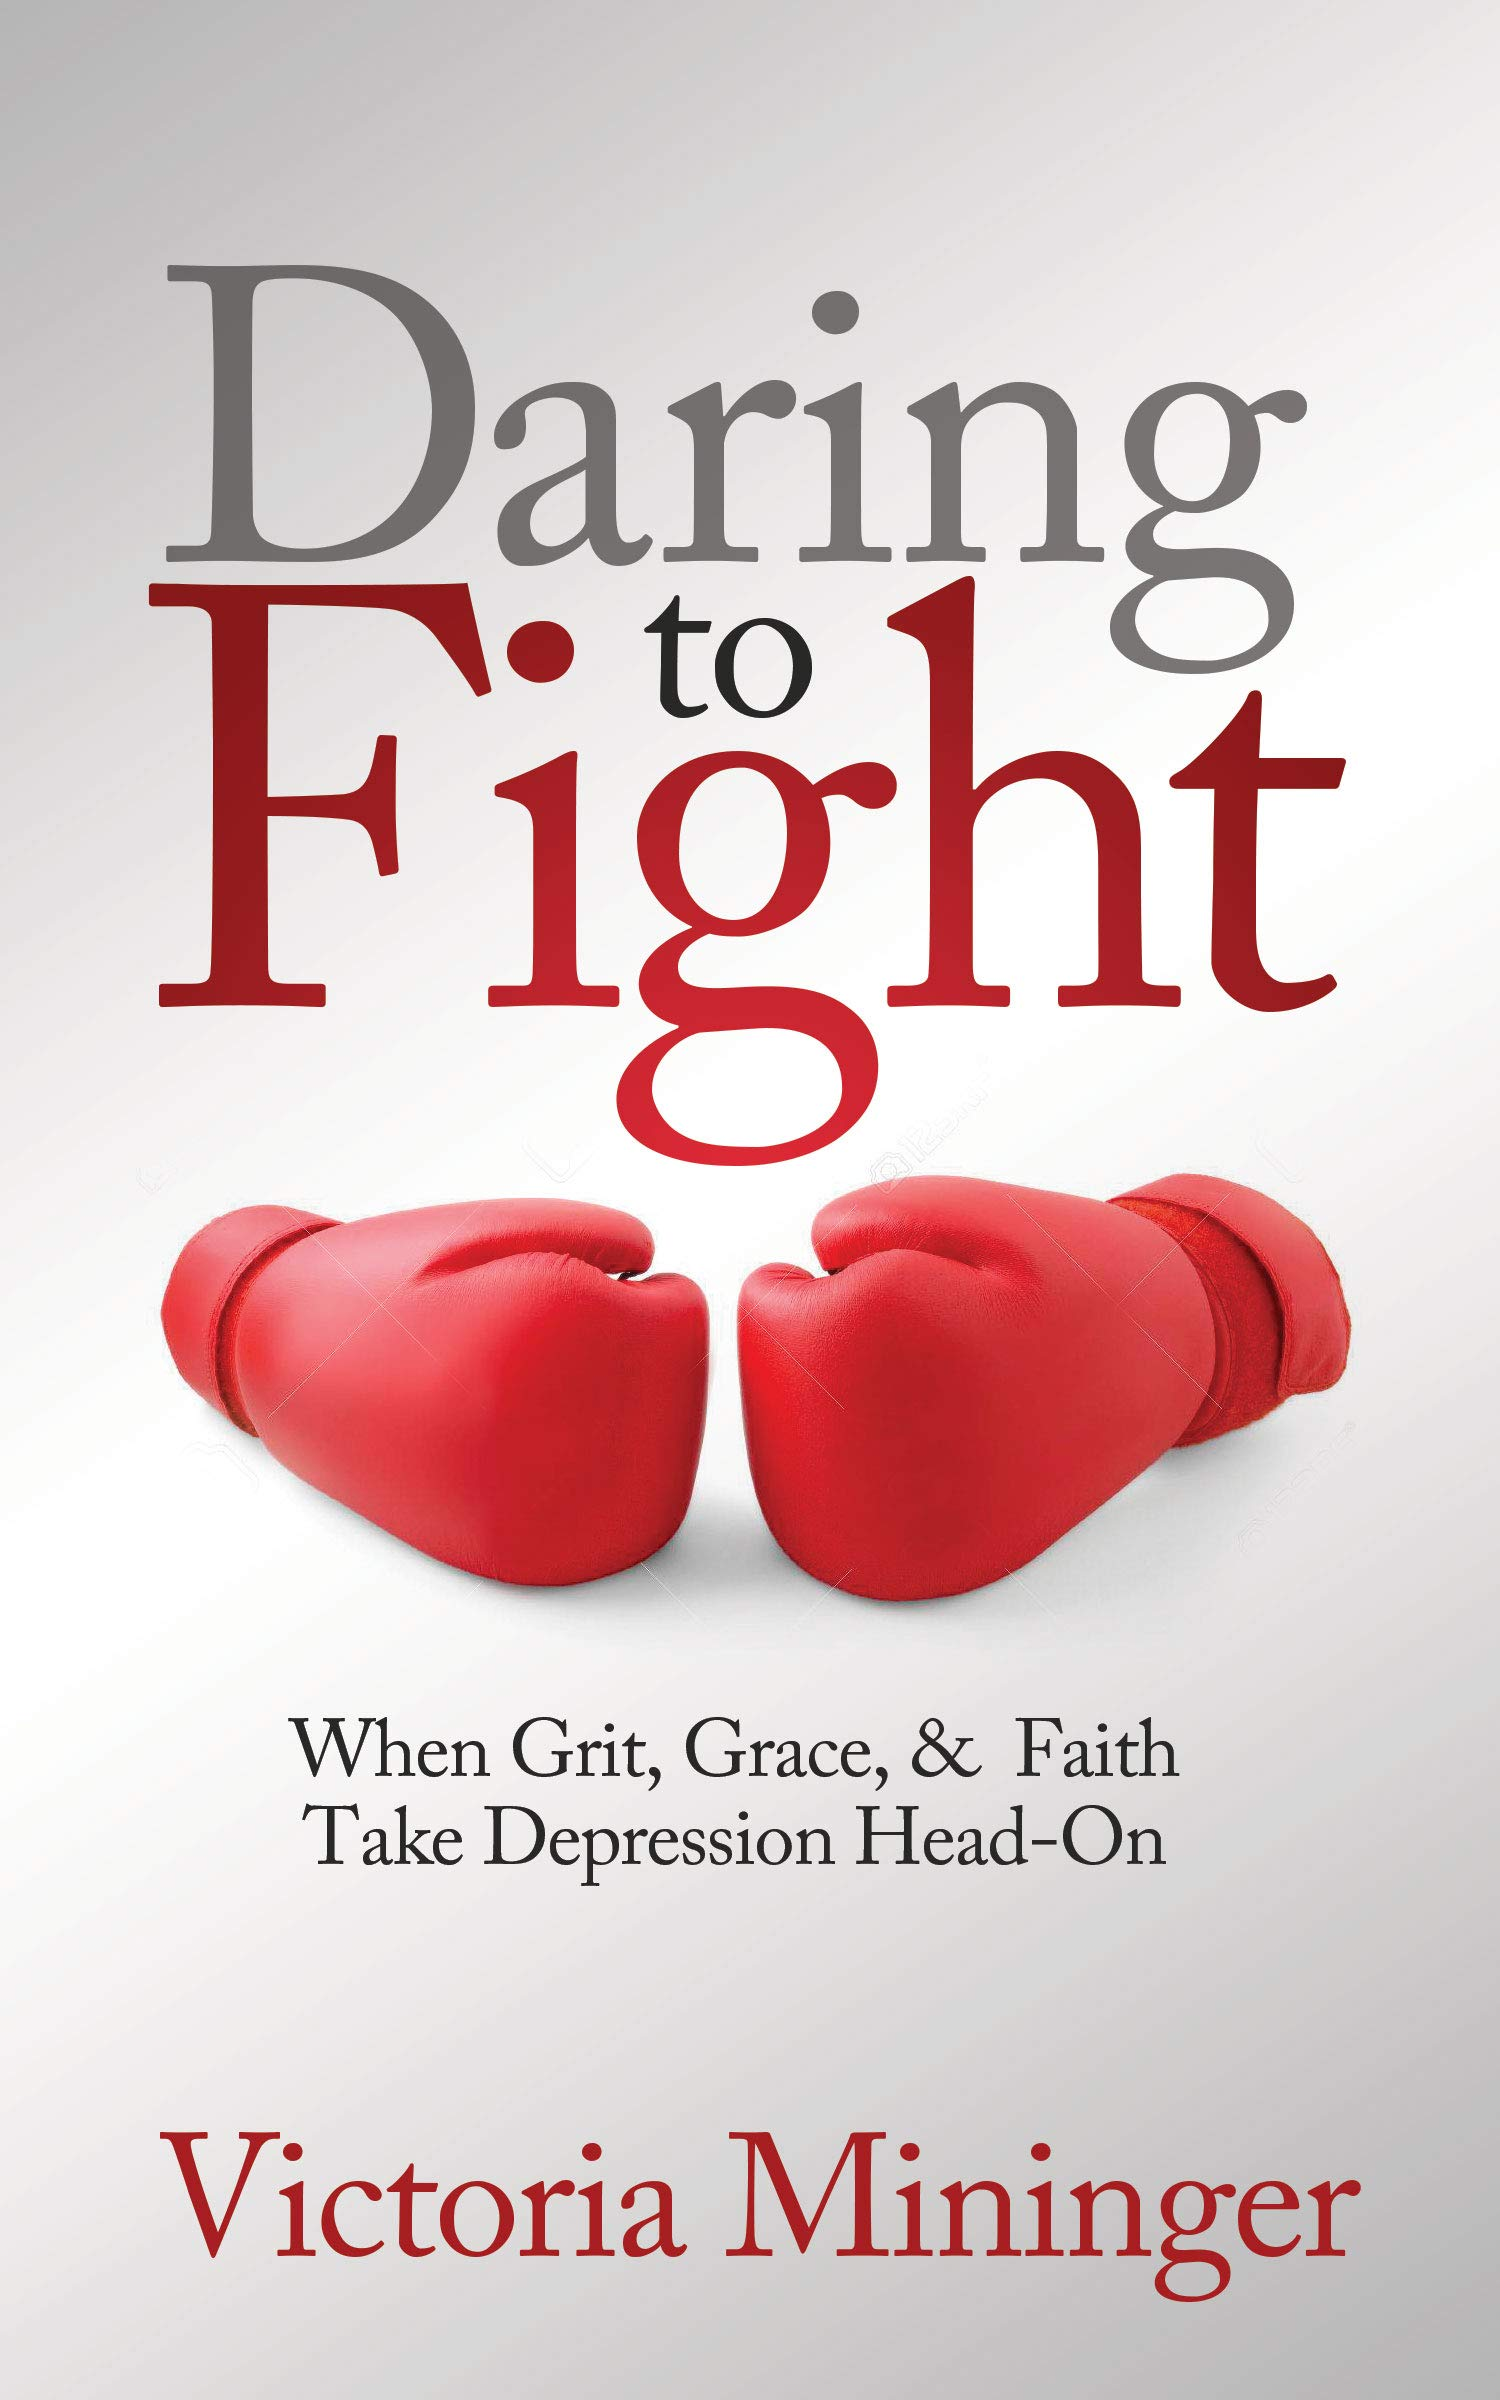 Daring to Fight: When Grit, Grace, & Faith Take Depression Head-On